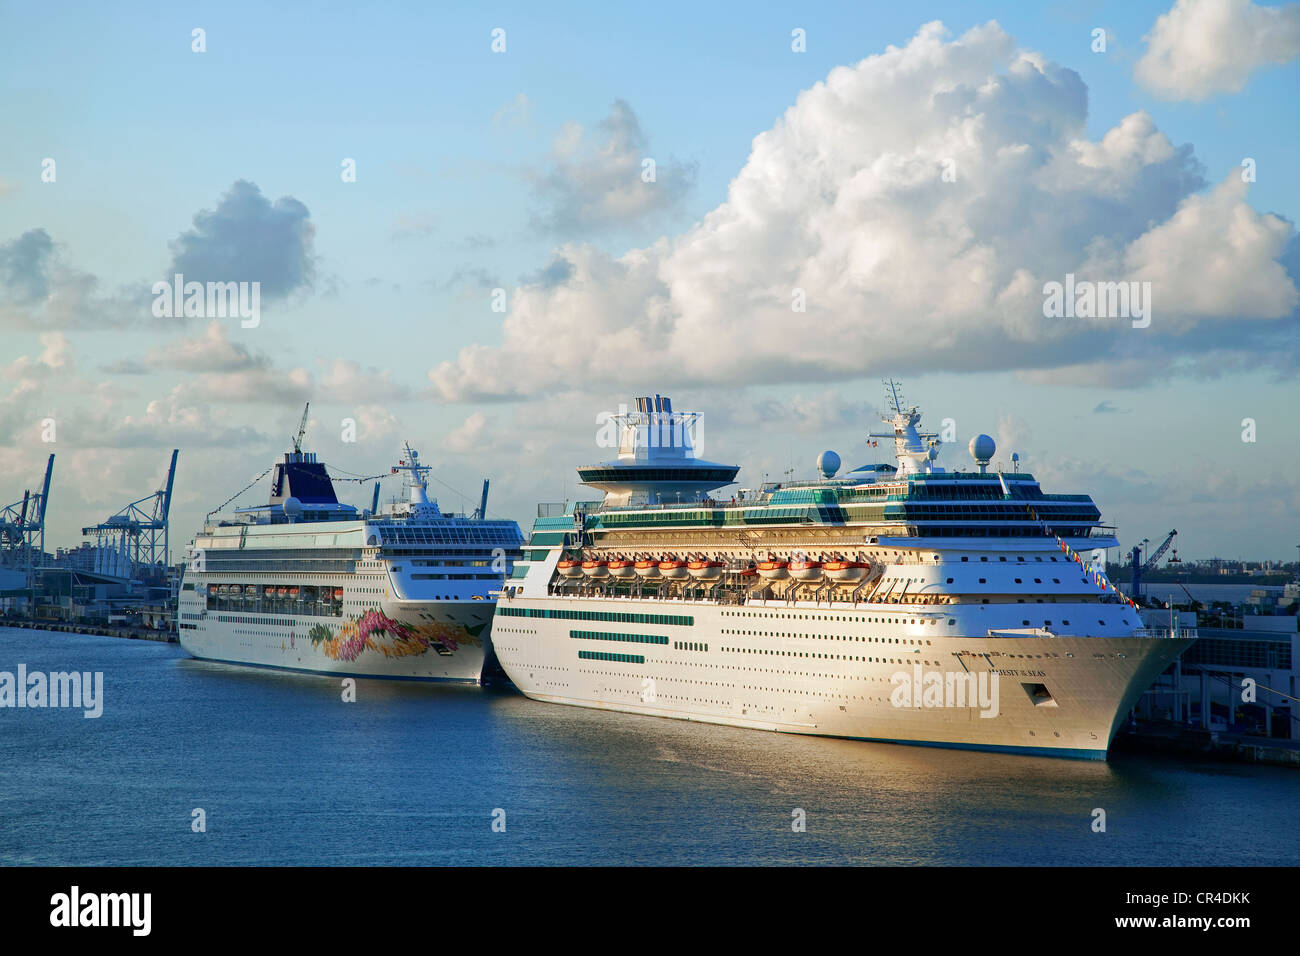 United States, Florida, Miami, cruise ships in harbour - Stock Image